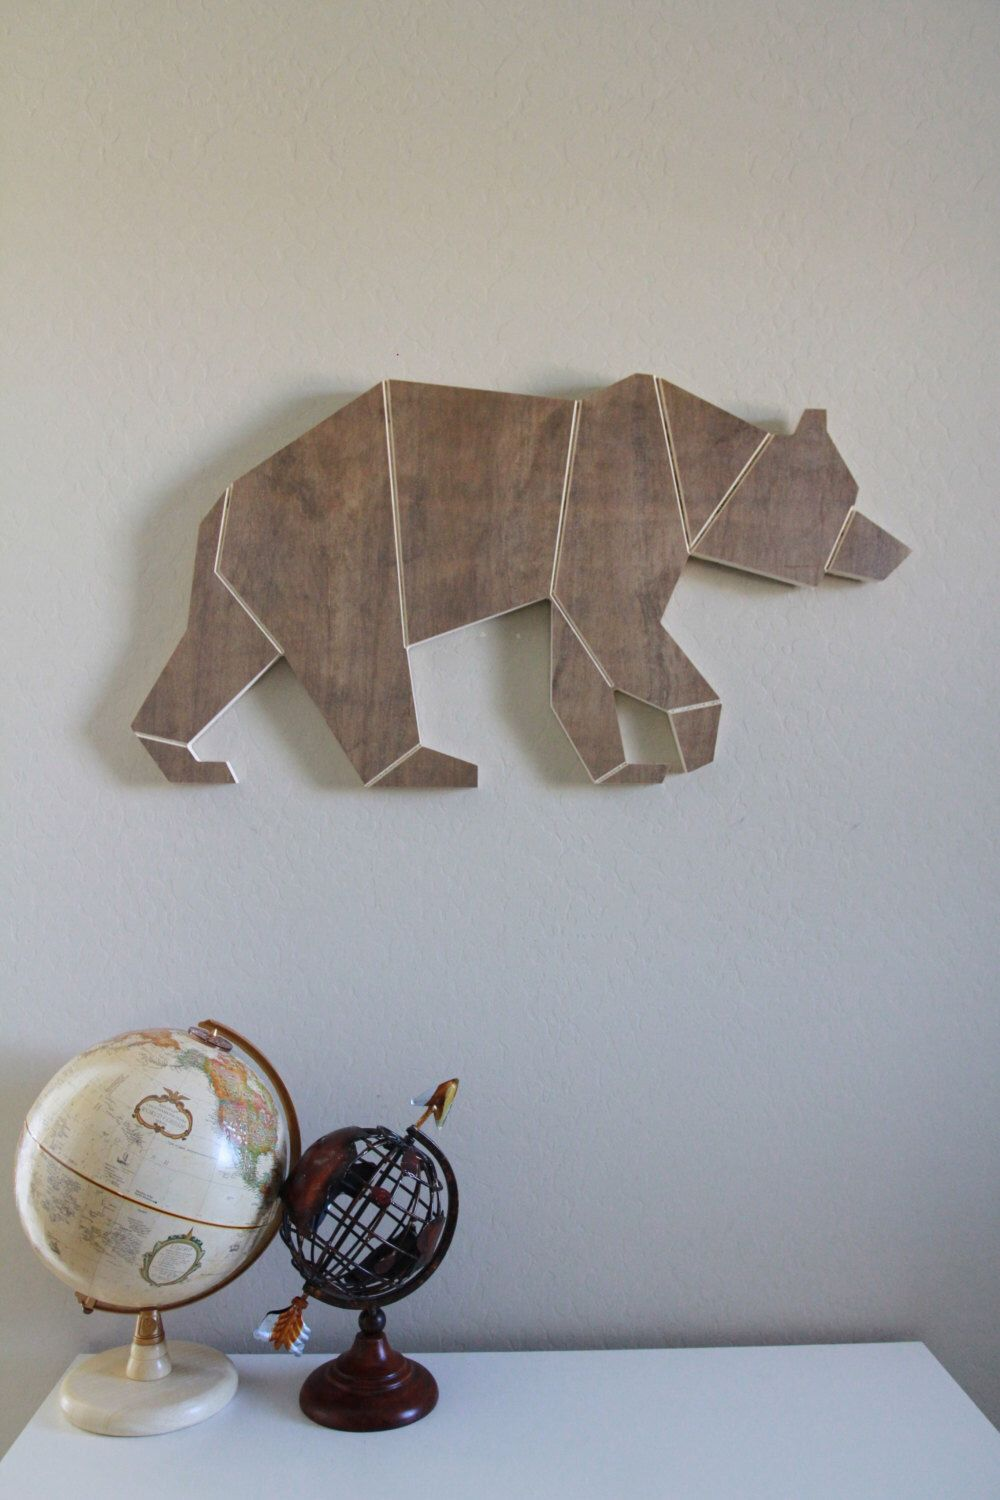 Wood Engraved Geometric Bear Home Wall Nursery Decor by ShopMulberryHouse on Etsy https://www.etsy.com/listing/456395508/wood-engraved-geometric-bear-home-wall